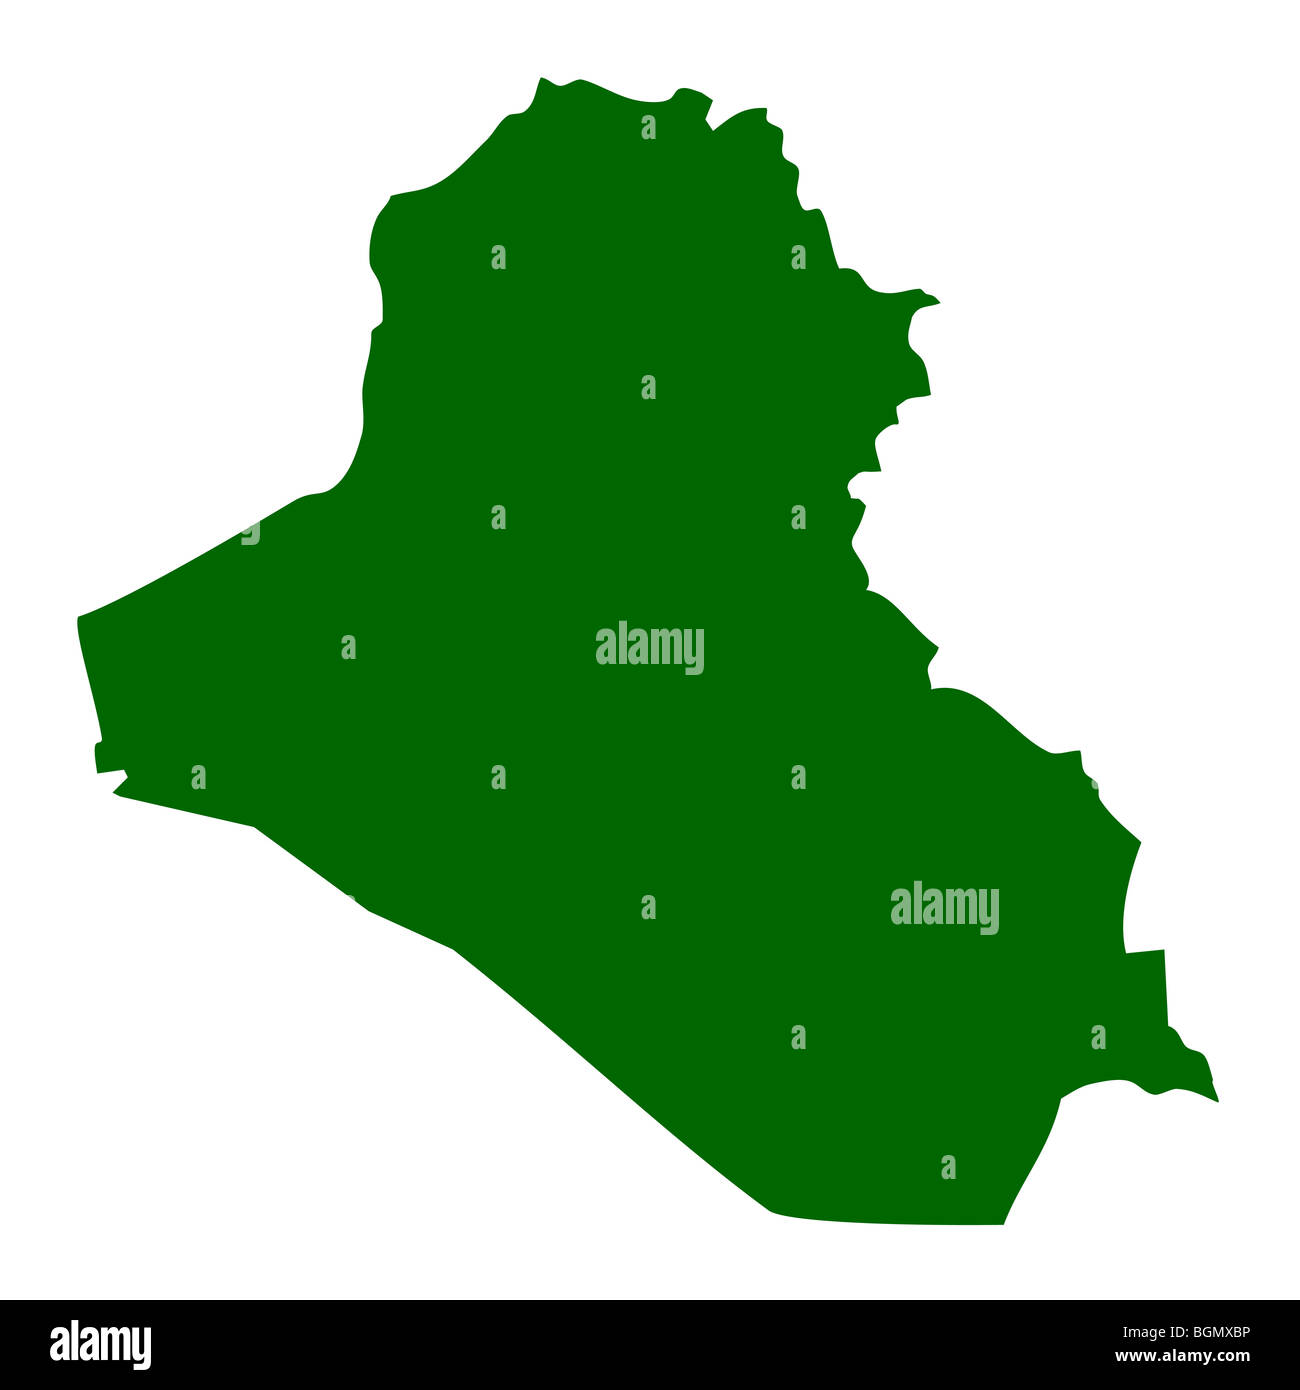 Map Of Iraq Stock Photos & Map Of Iraq Stock Images - Alamy